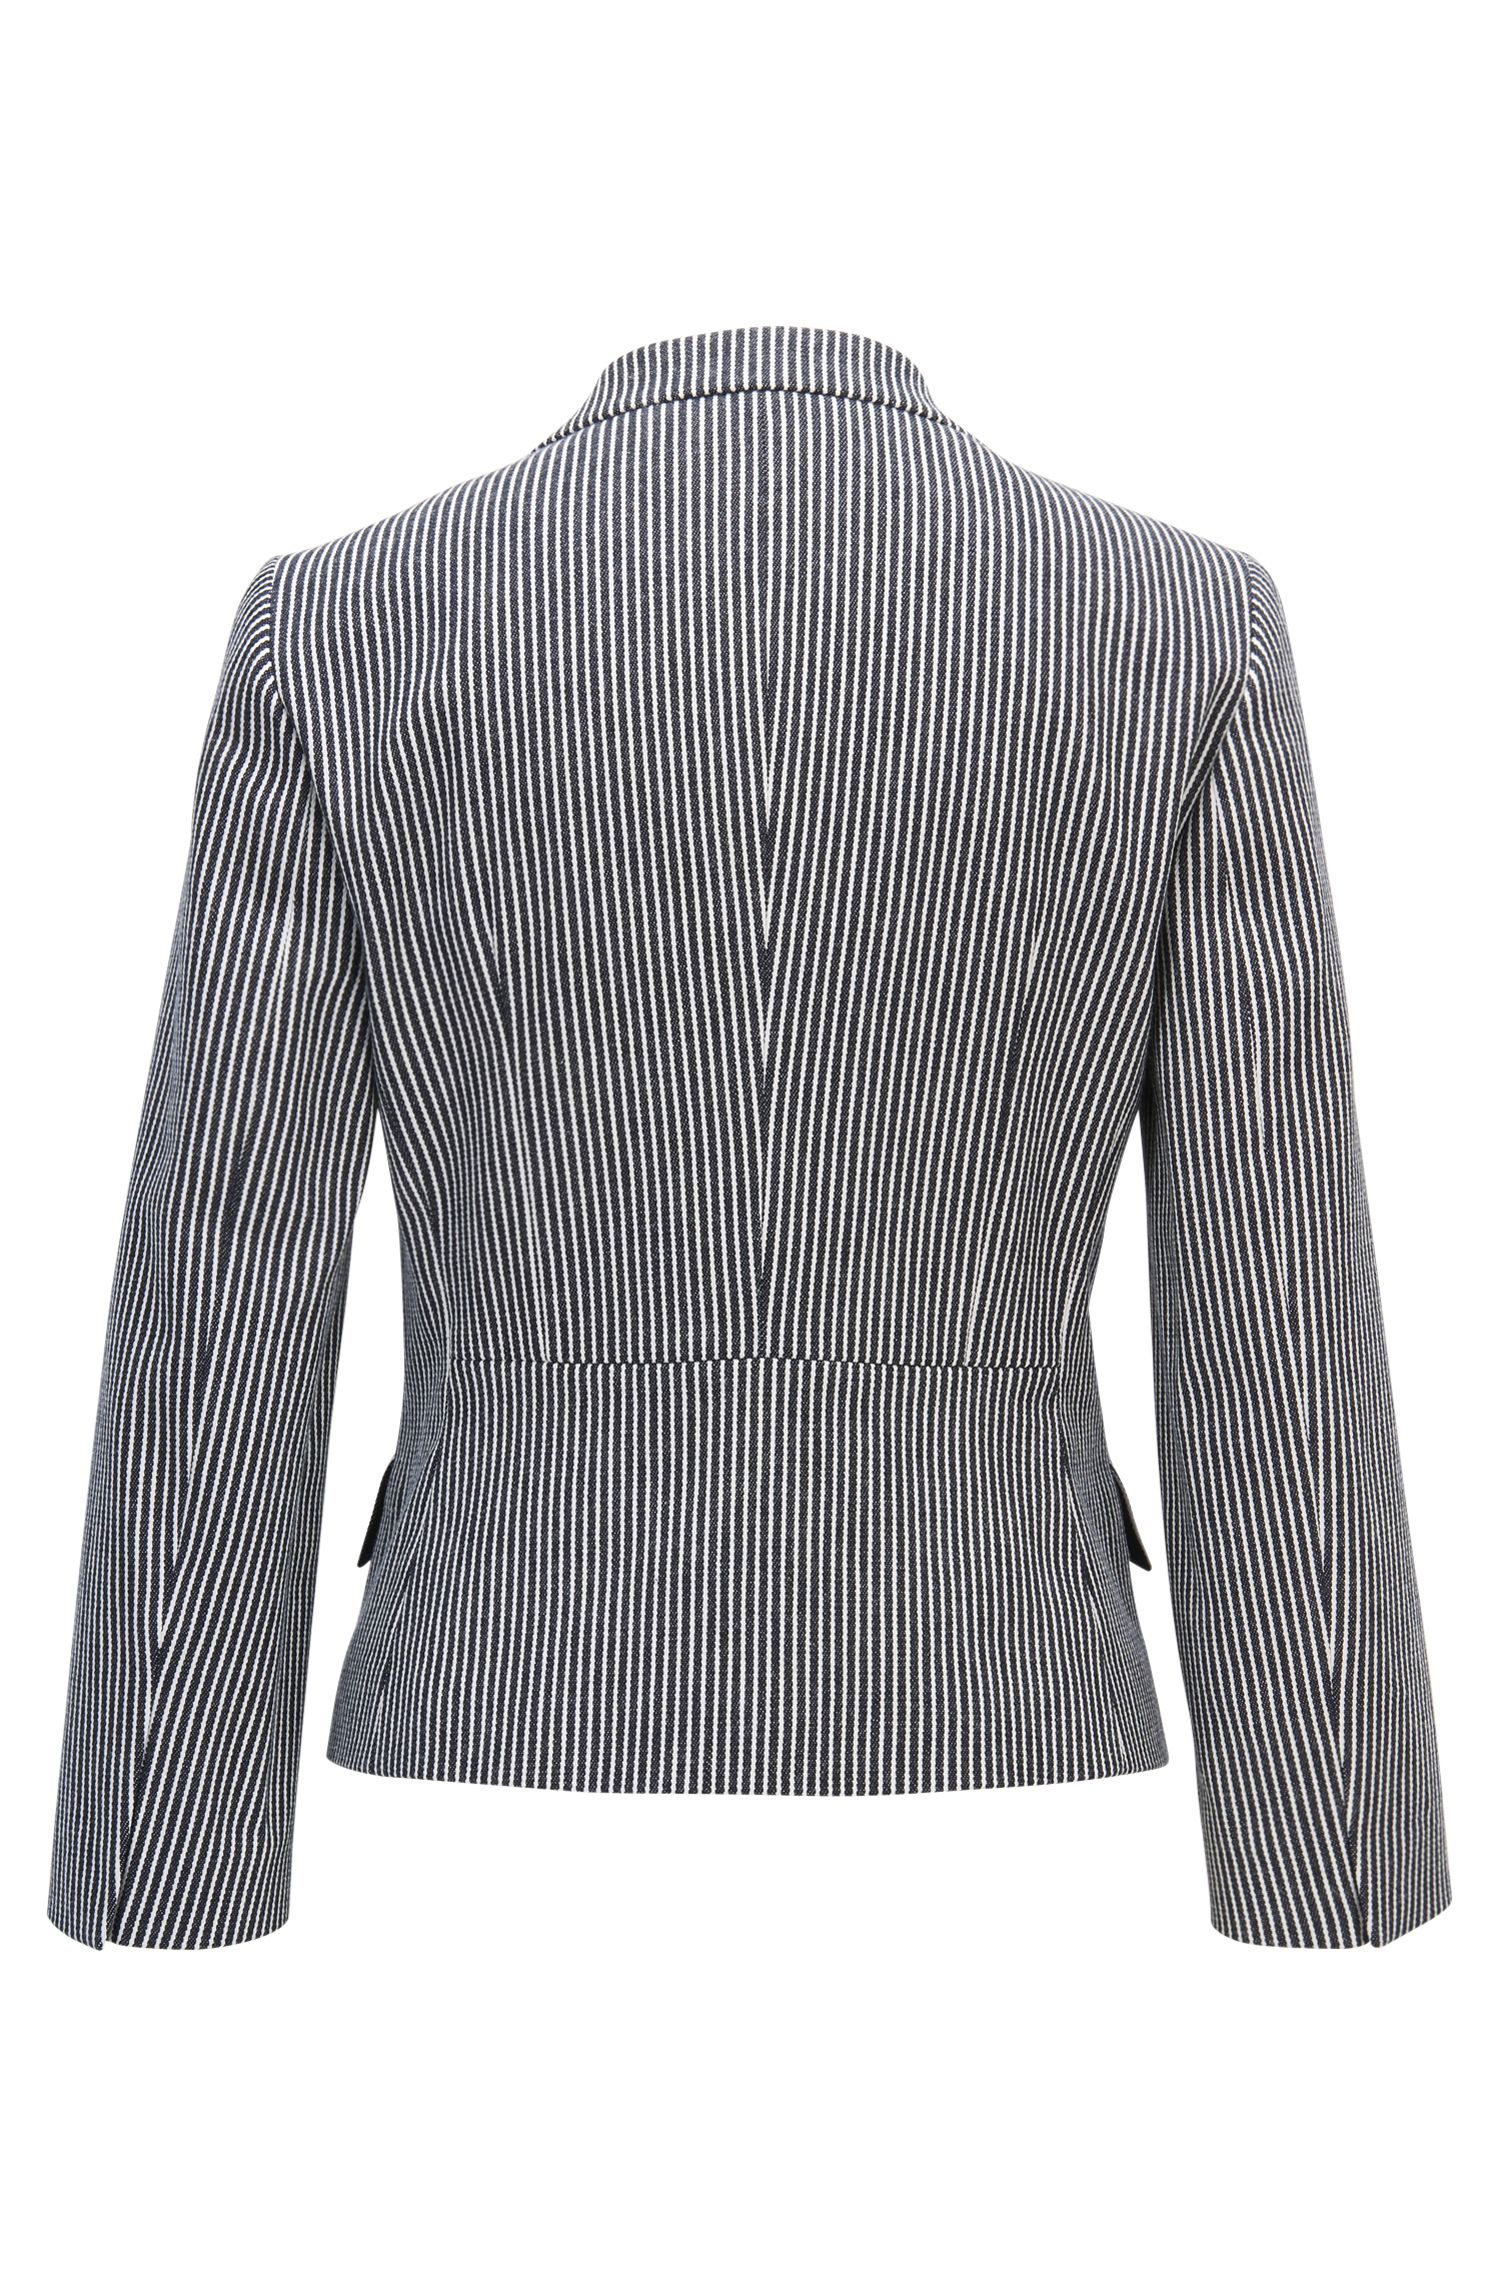 Regular-Fit Blazer aus gestreifter Stretch-Baumwolle